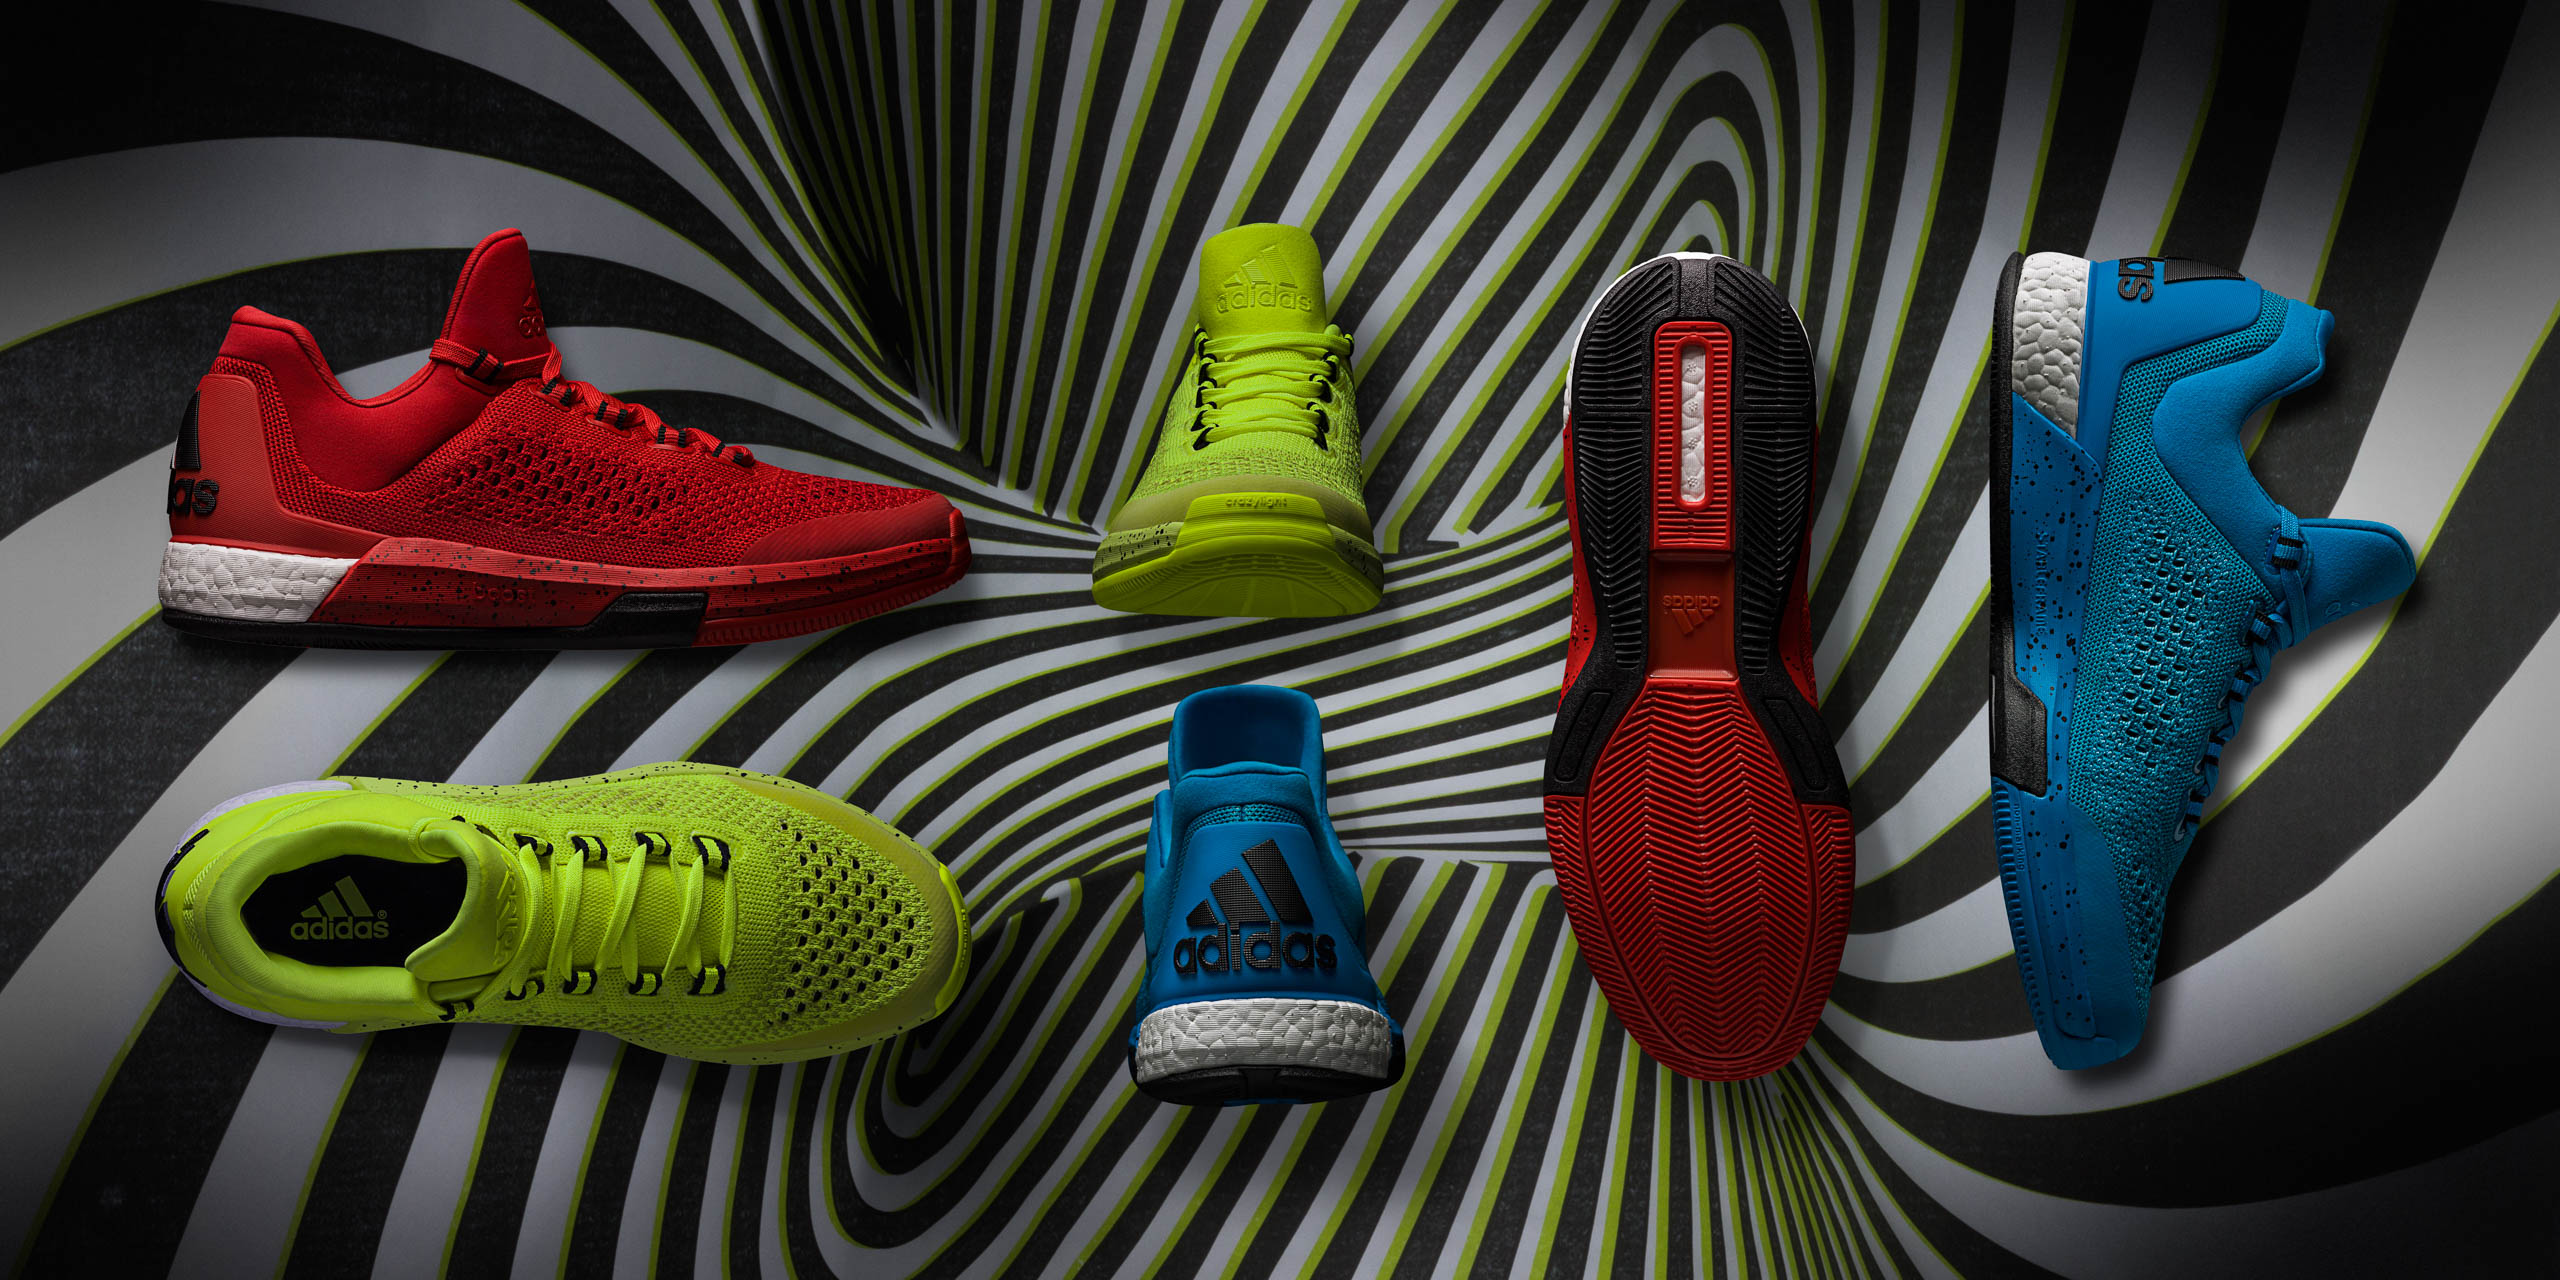 Adidas Crazylight Boost basketball footwear